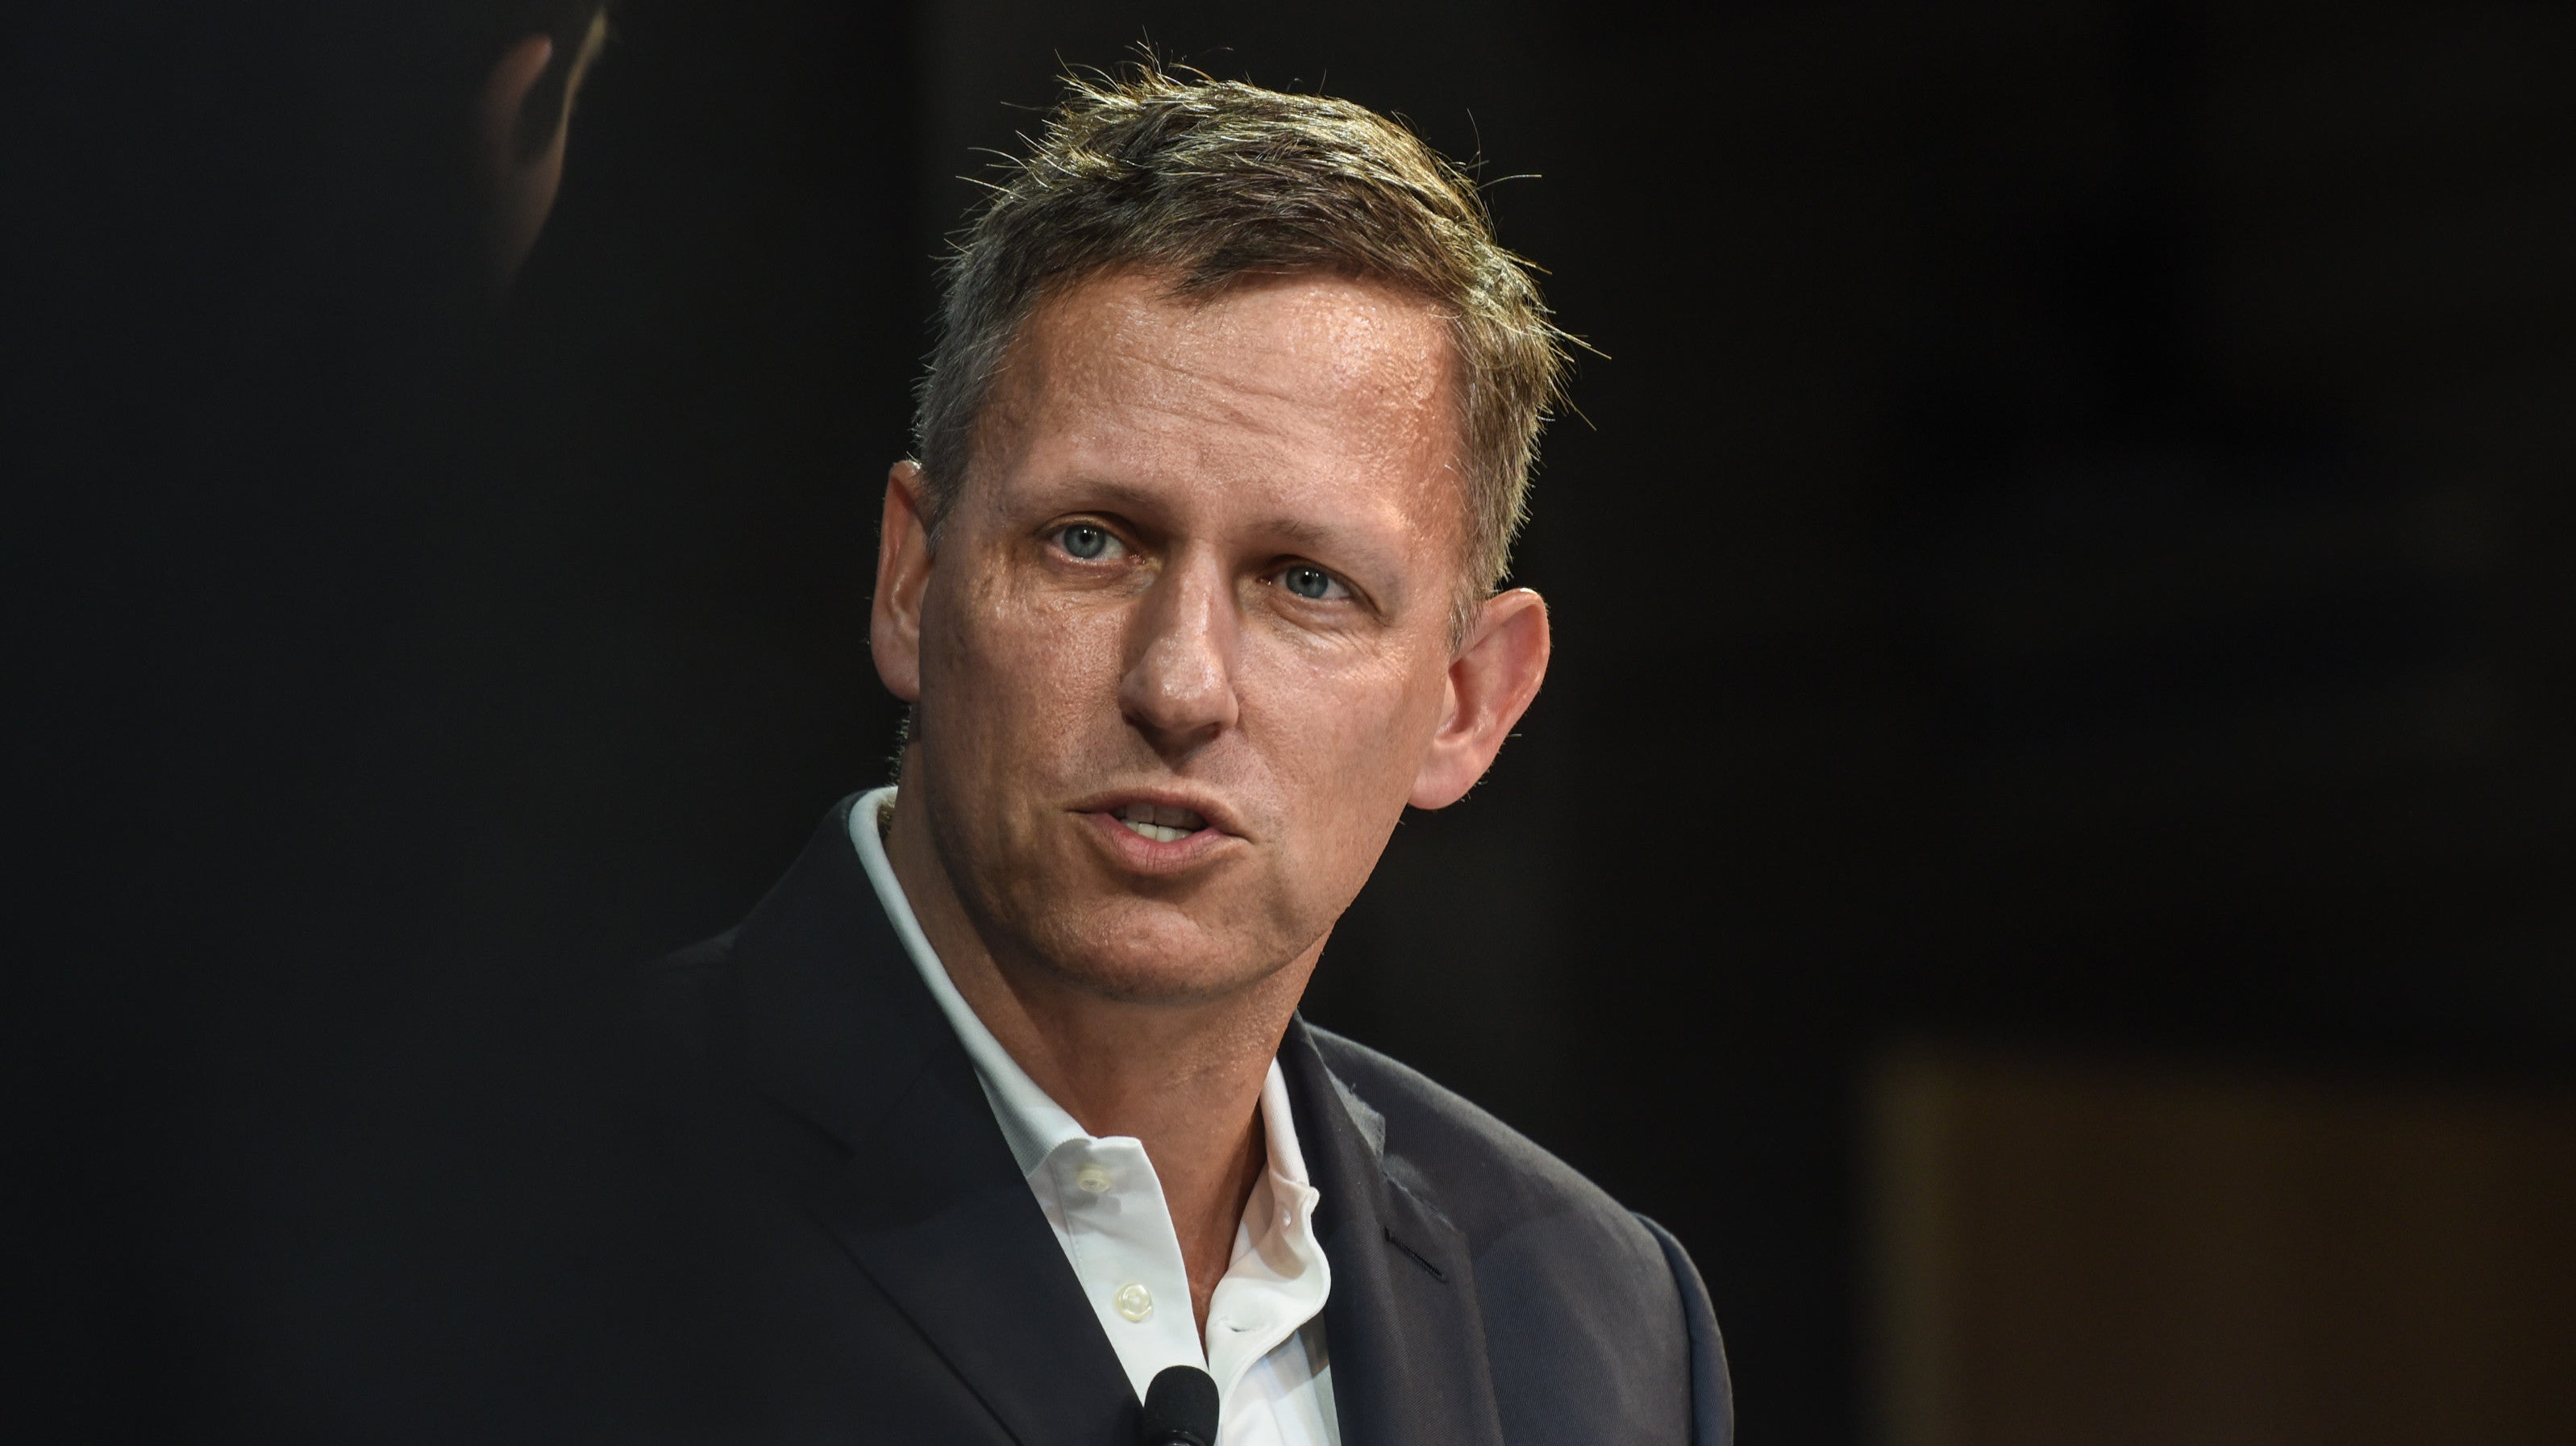 Trump Admin Gives Coronavirus Tracking Contract To Peter Thiel's Palantir: Report